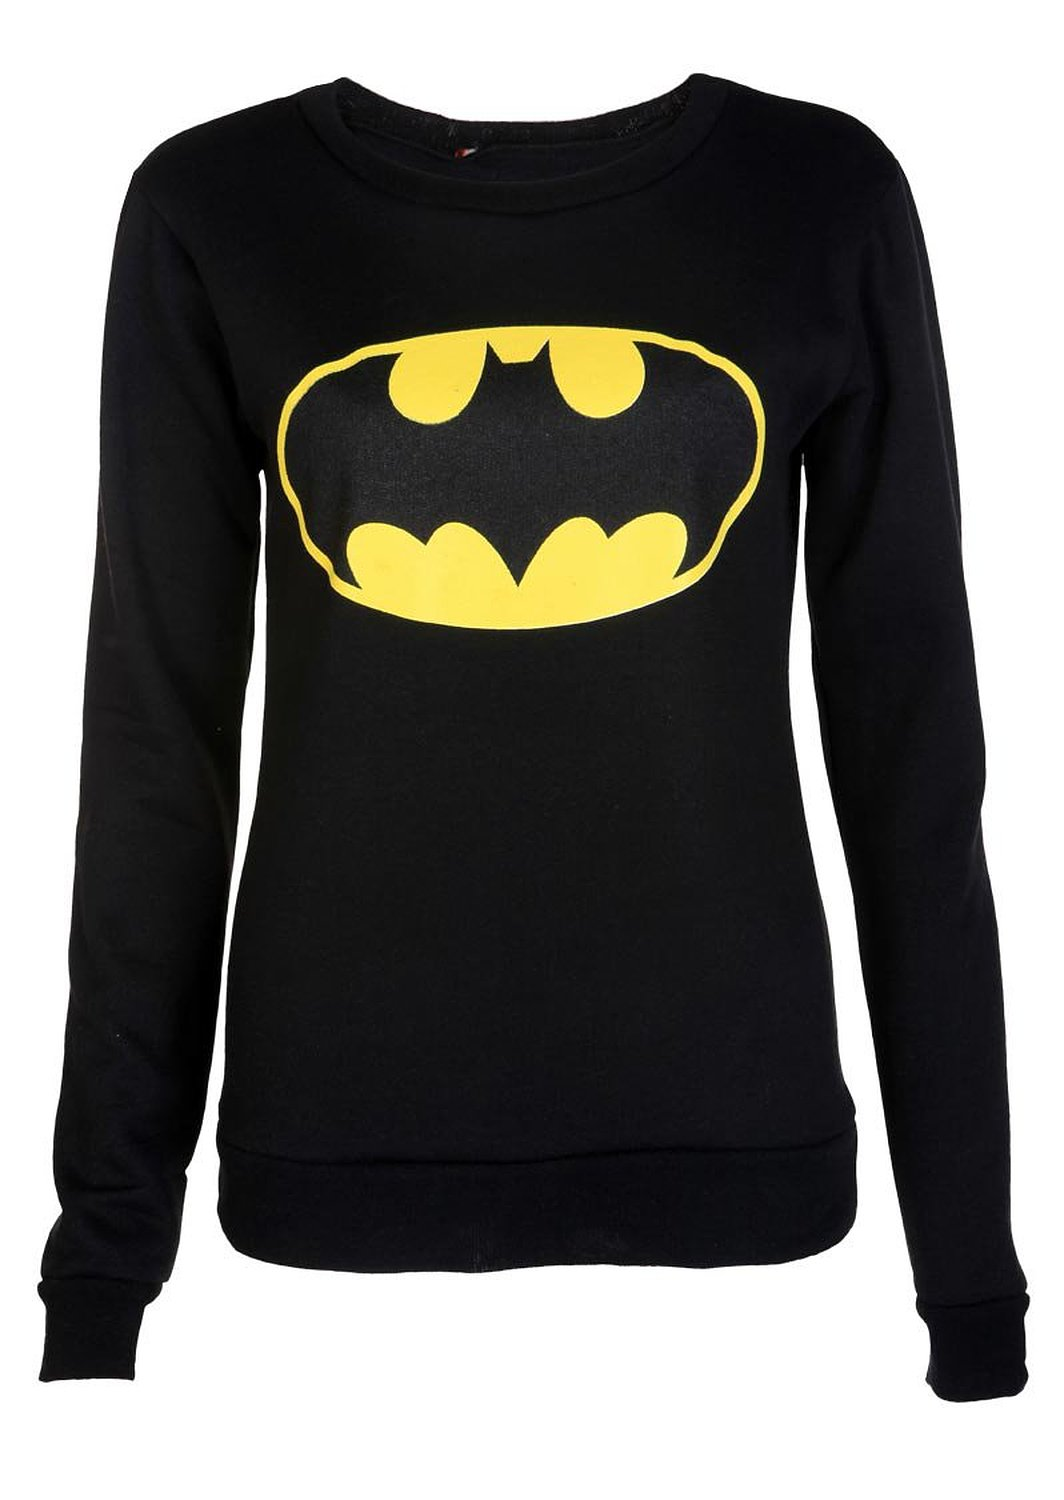 Crazy girls women's pvc long sleeve mickey mouse batman print sweatshirt at amazon women's clothing store: pullover sweaters